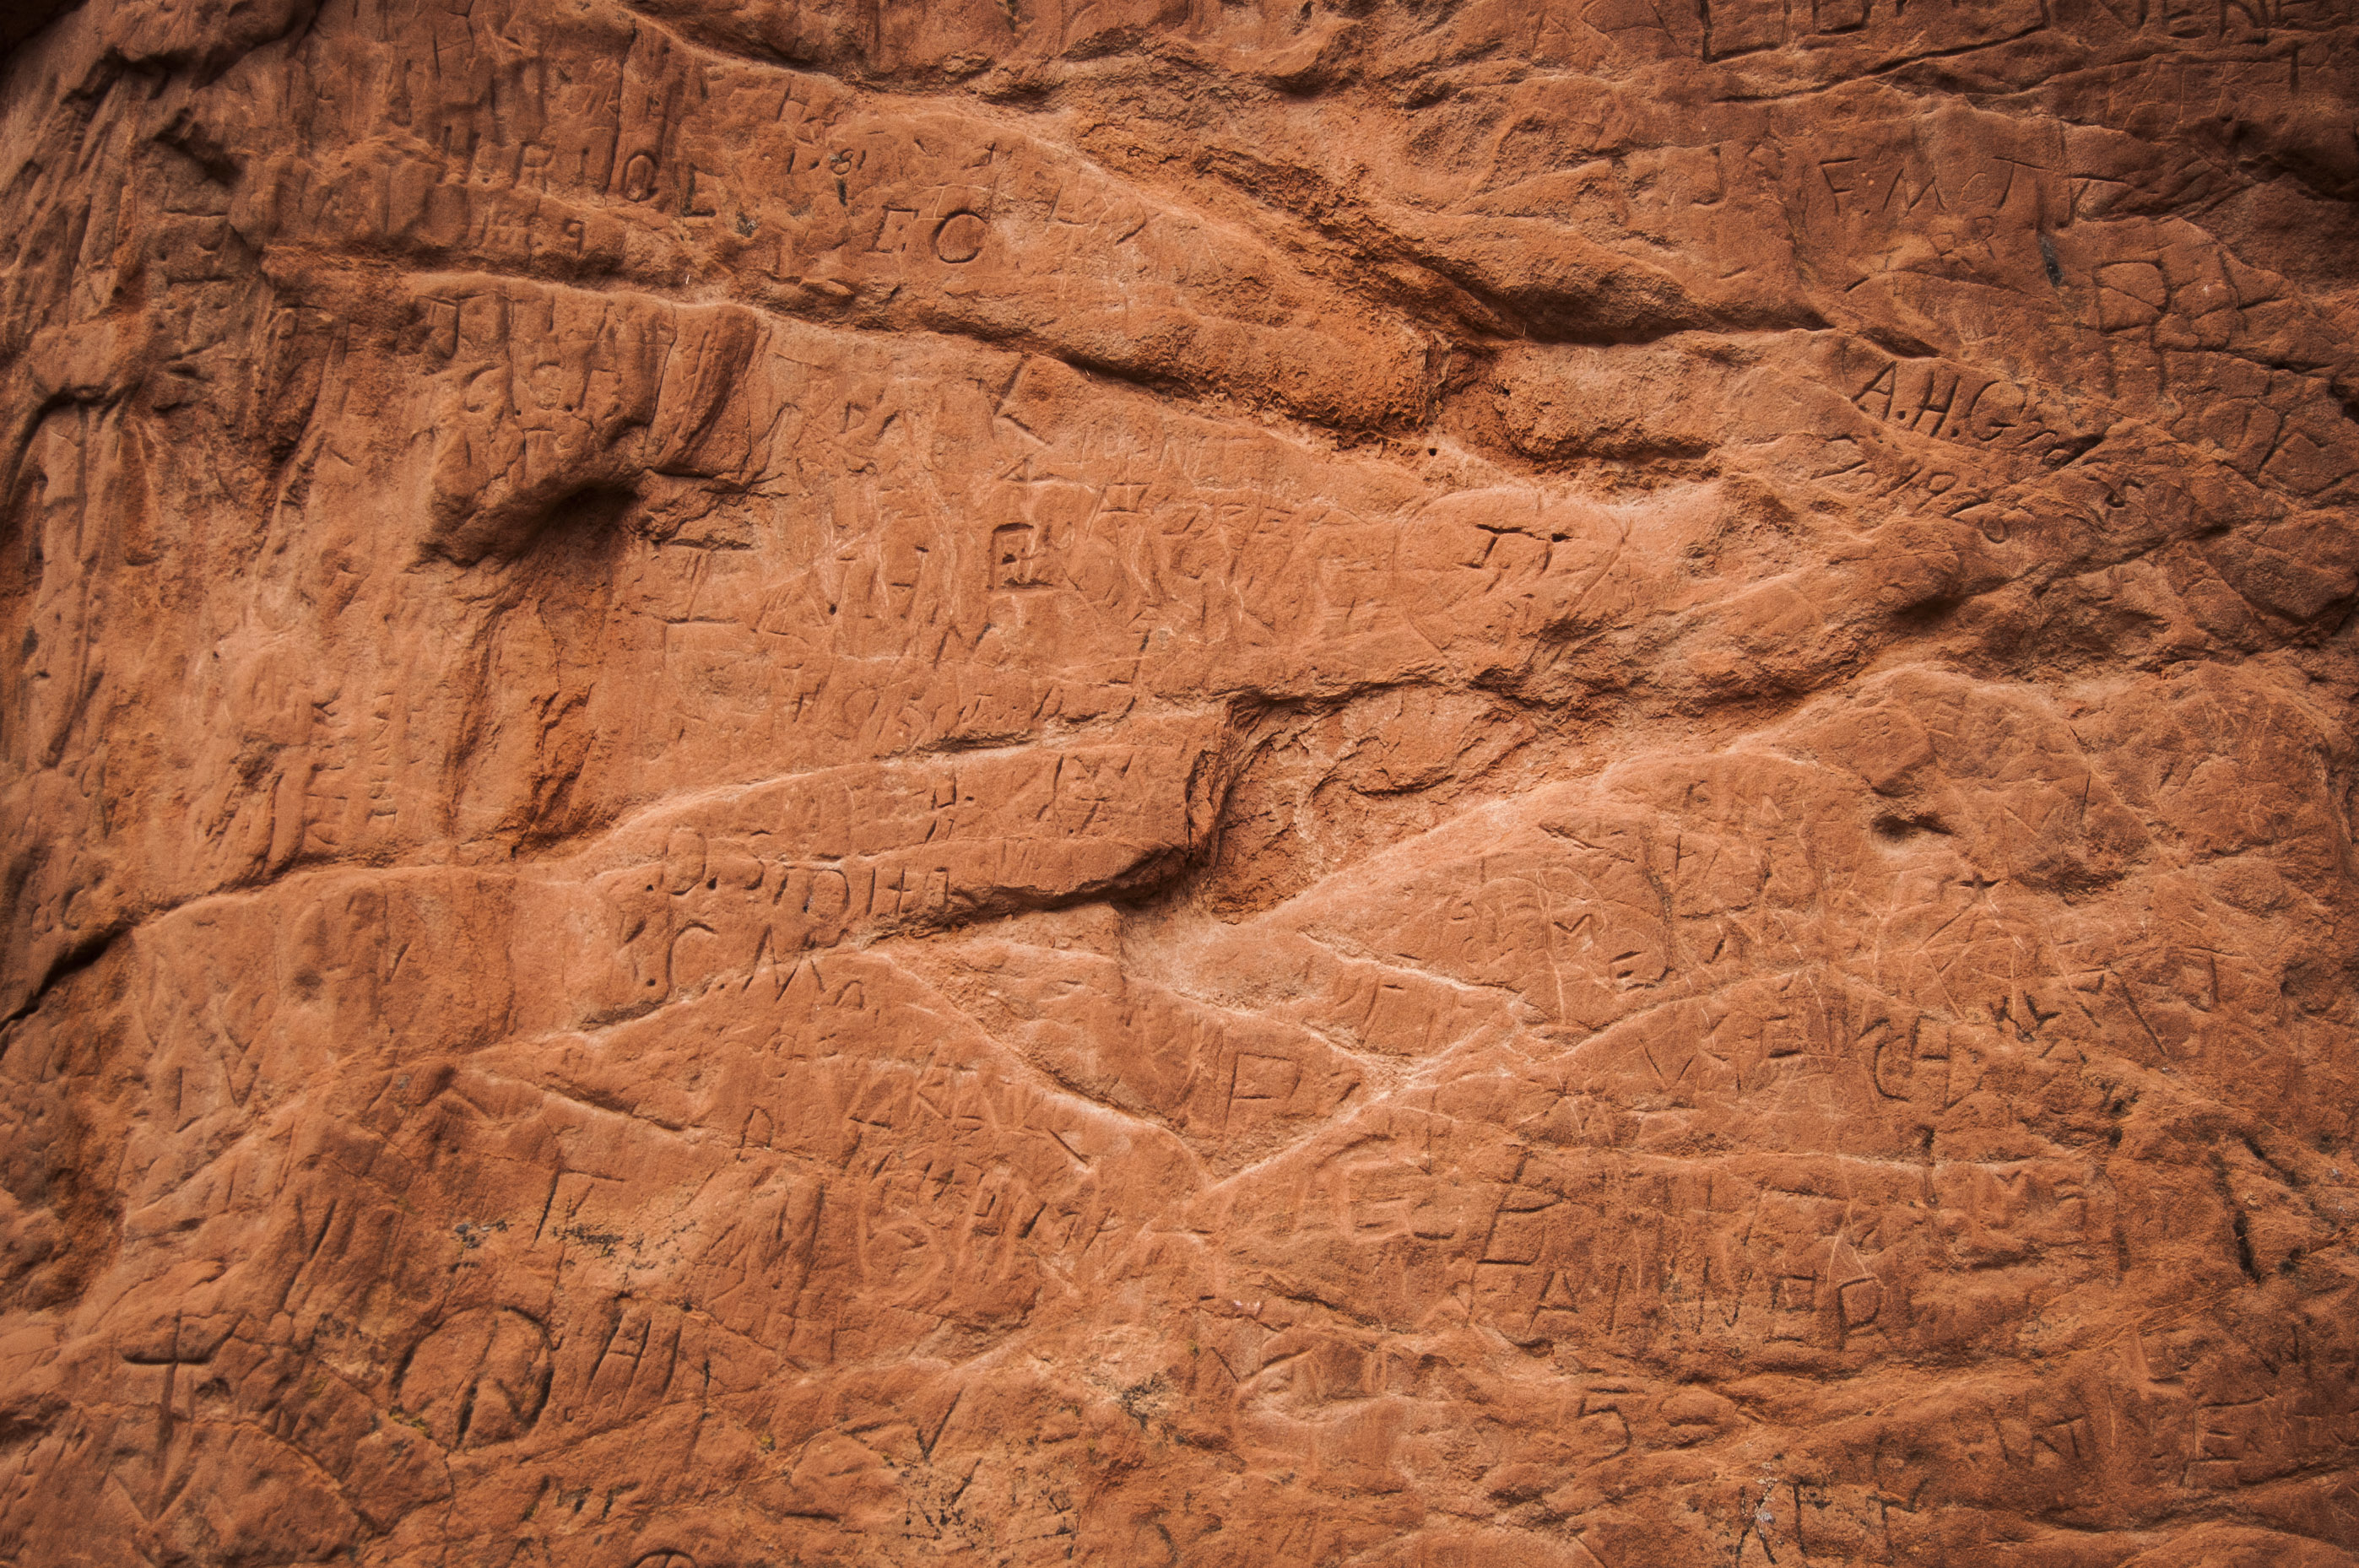 <p>Signature Rock, where visitors have obscured important traces of Colorado history with vandalism over the years. Signature Rock is no longer part of official tours through Garden of the Gods.</p>